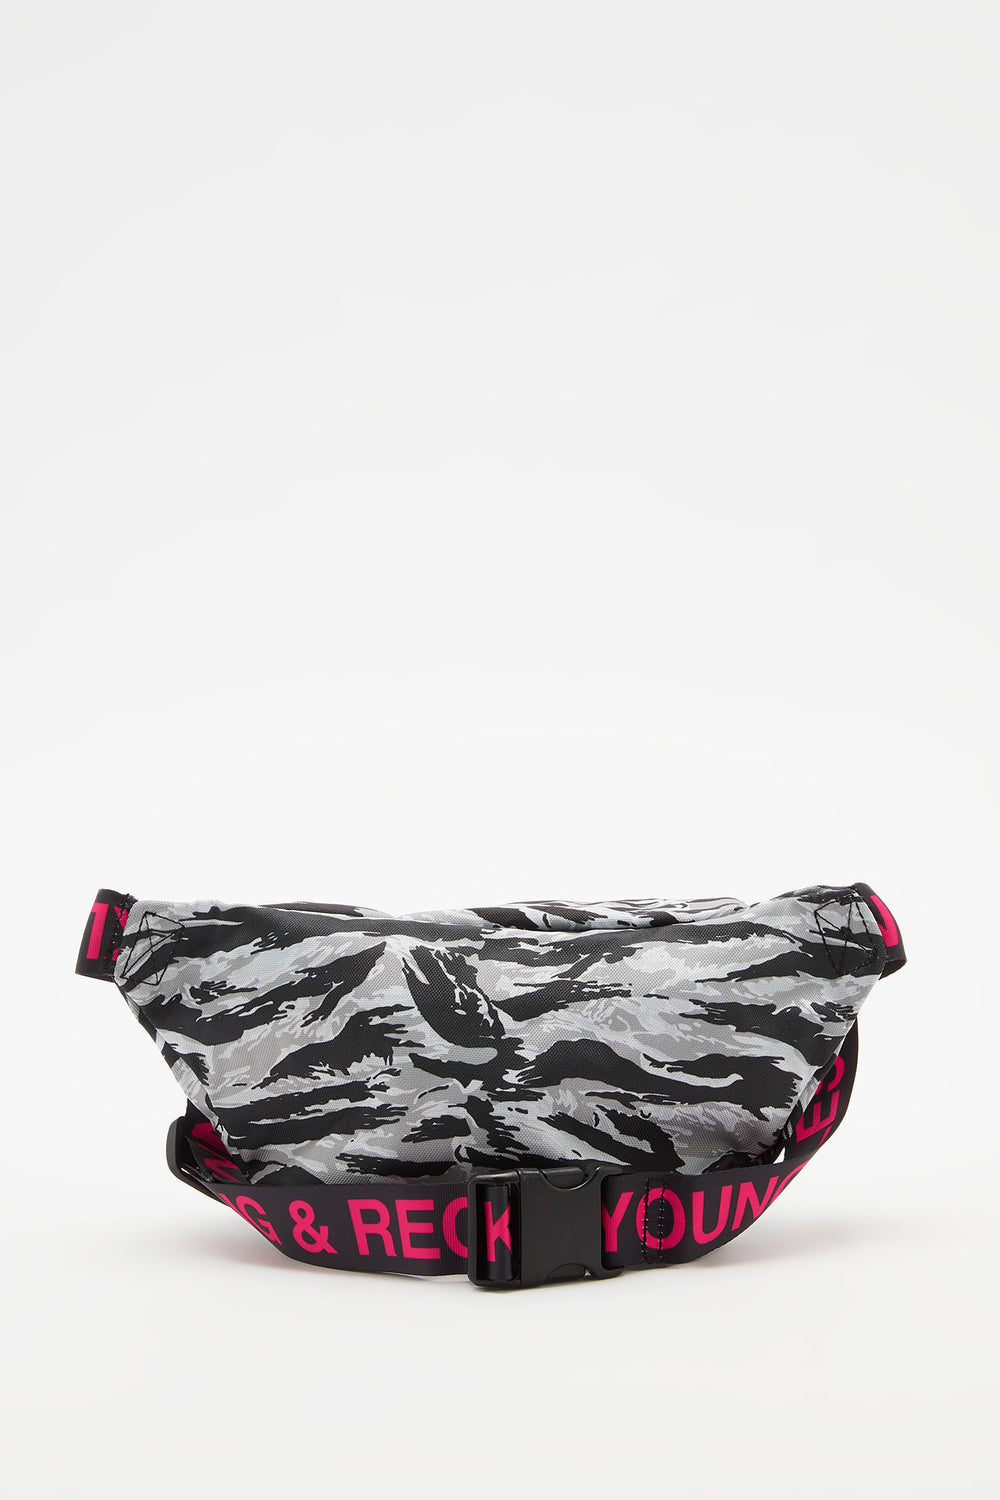 Sac Banane Camouflage Young & Reckless Gris